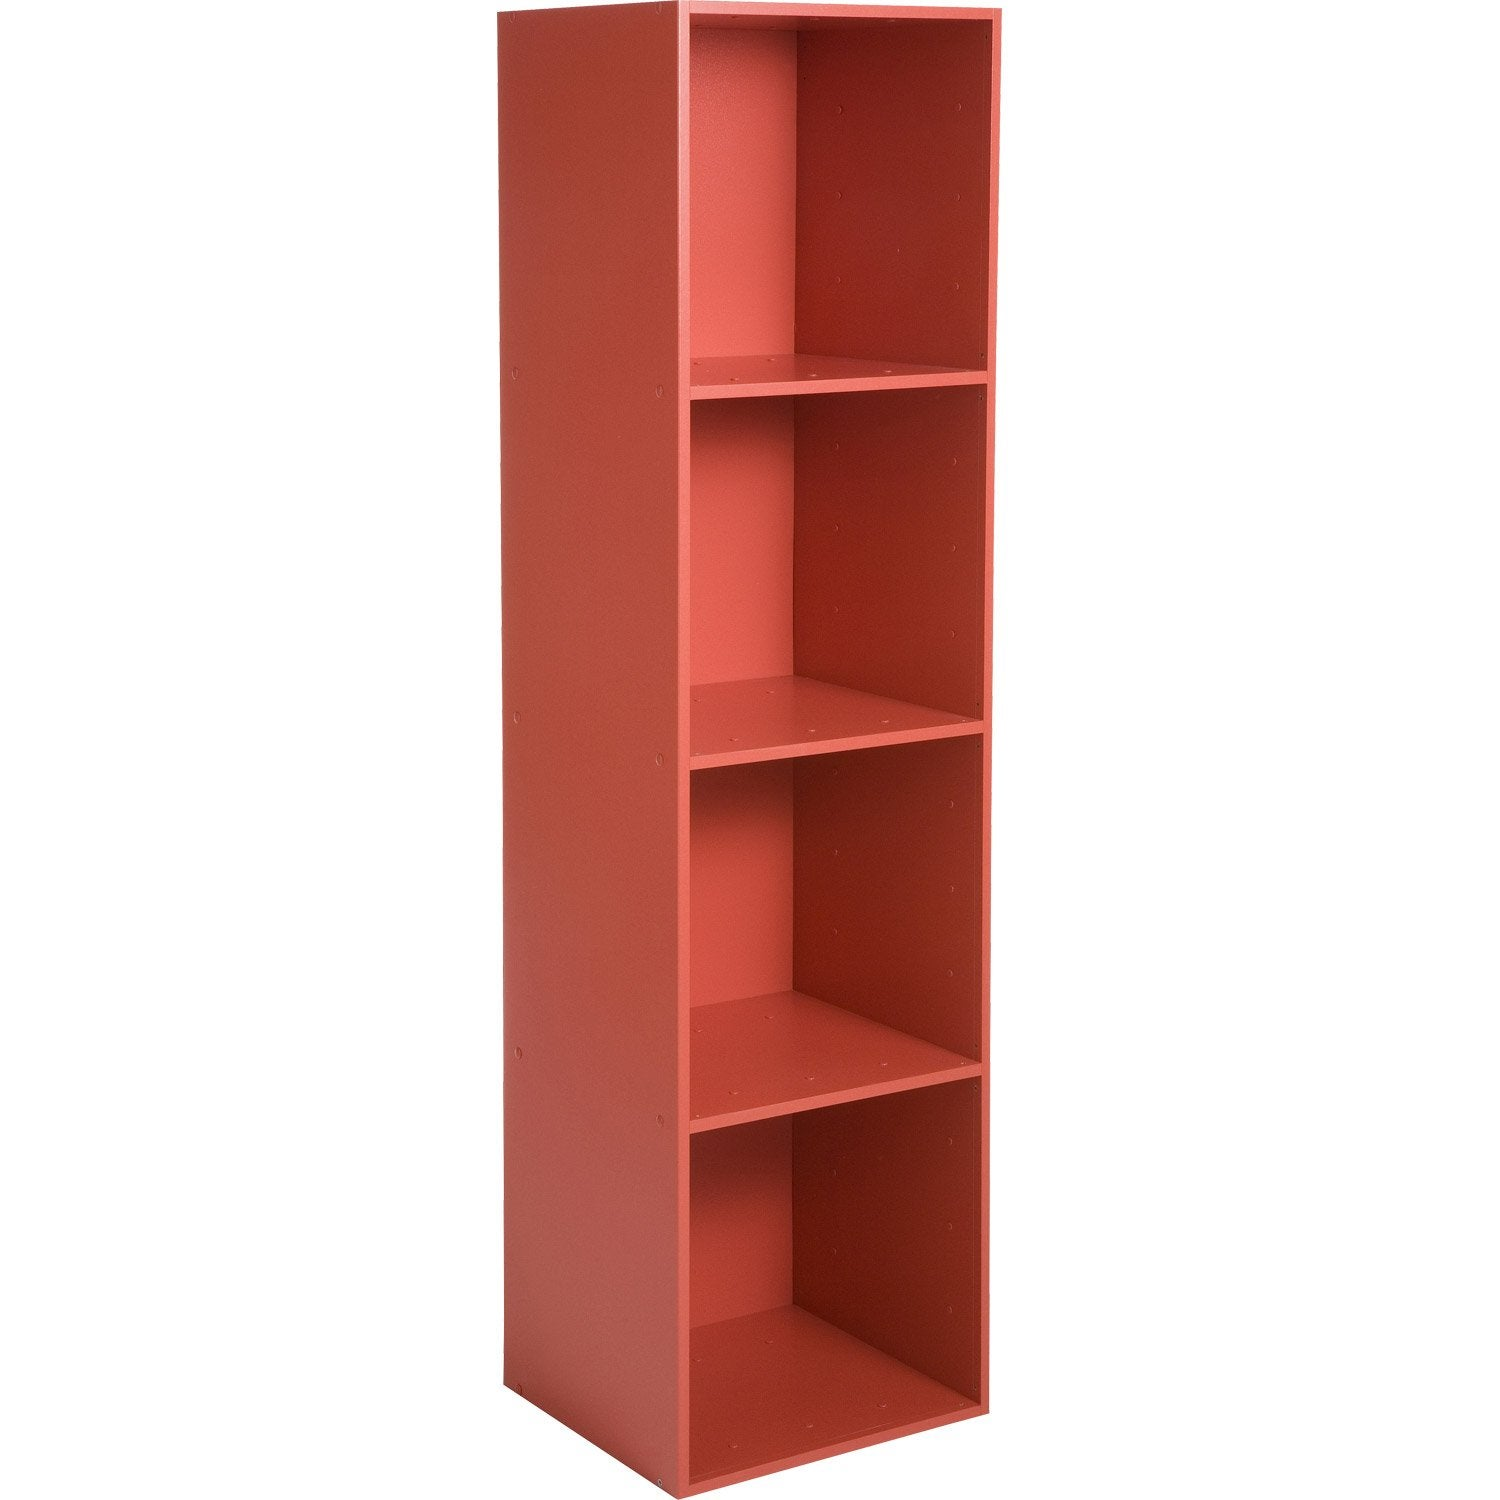 Etag re 4 cases multikaz rouge x x cm leroy merlin Etagere salle de bain leroy merlin